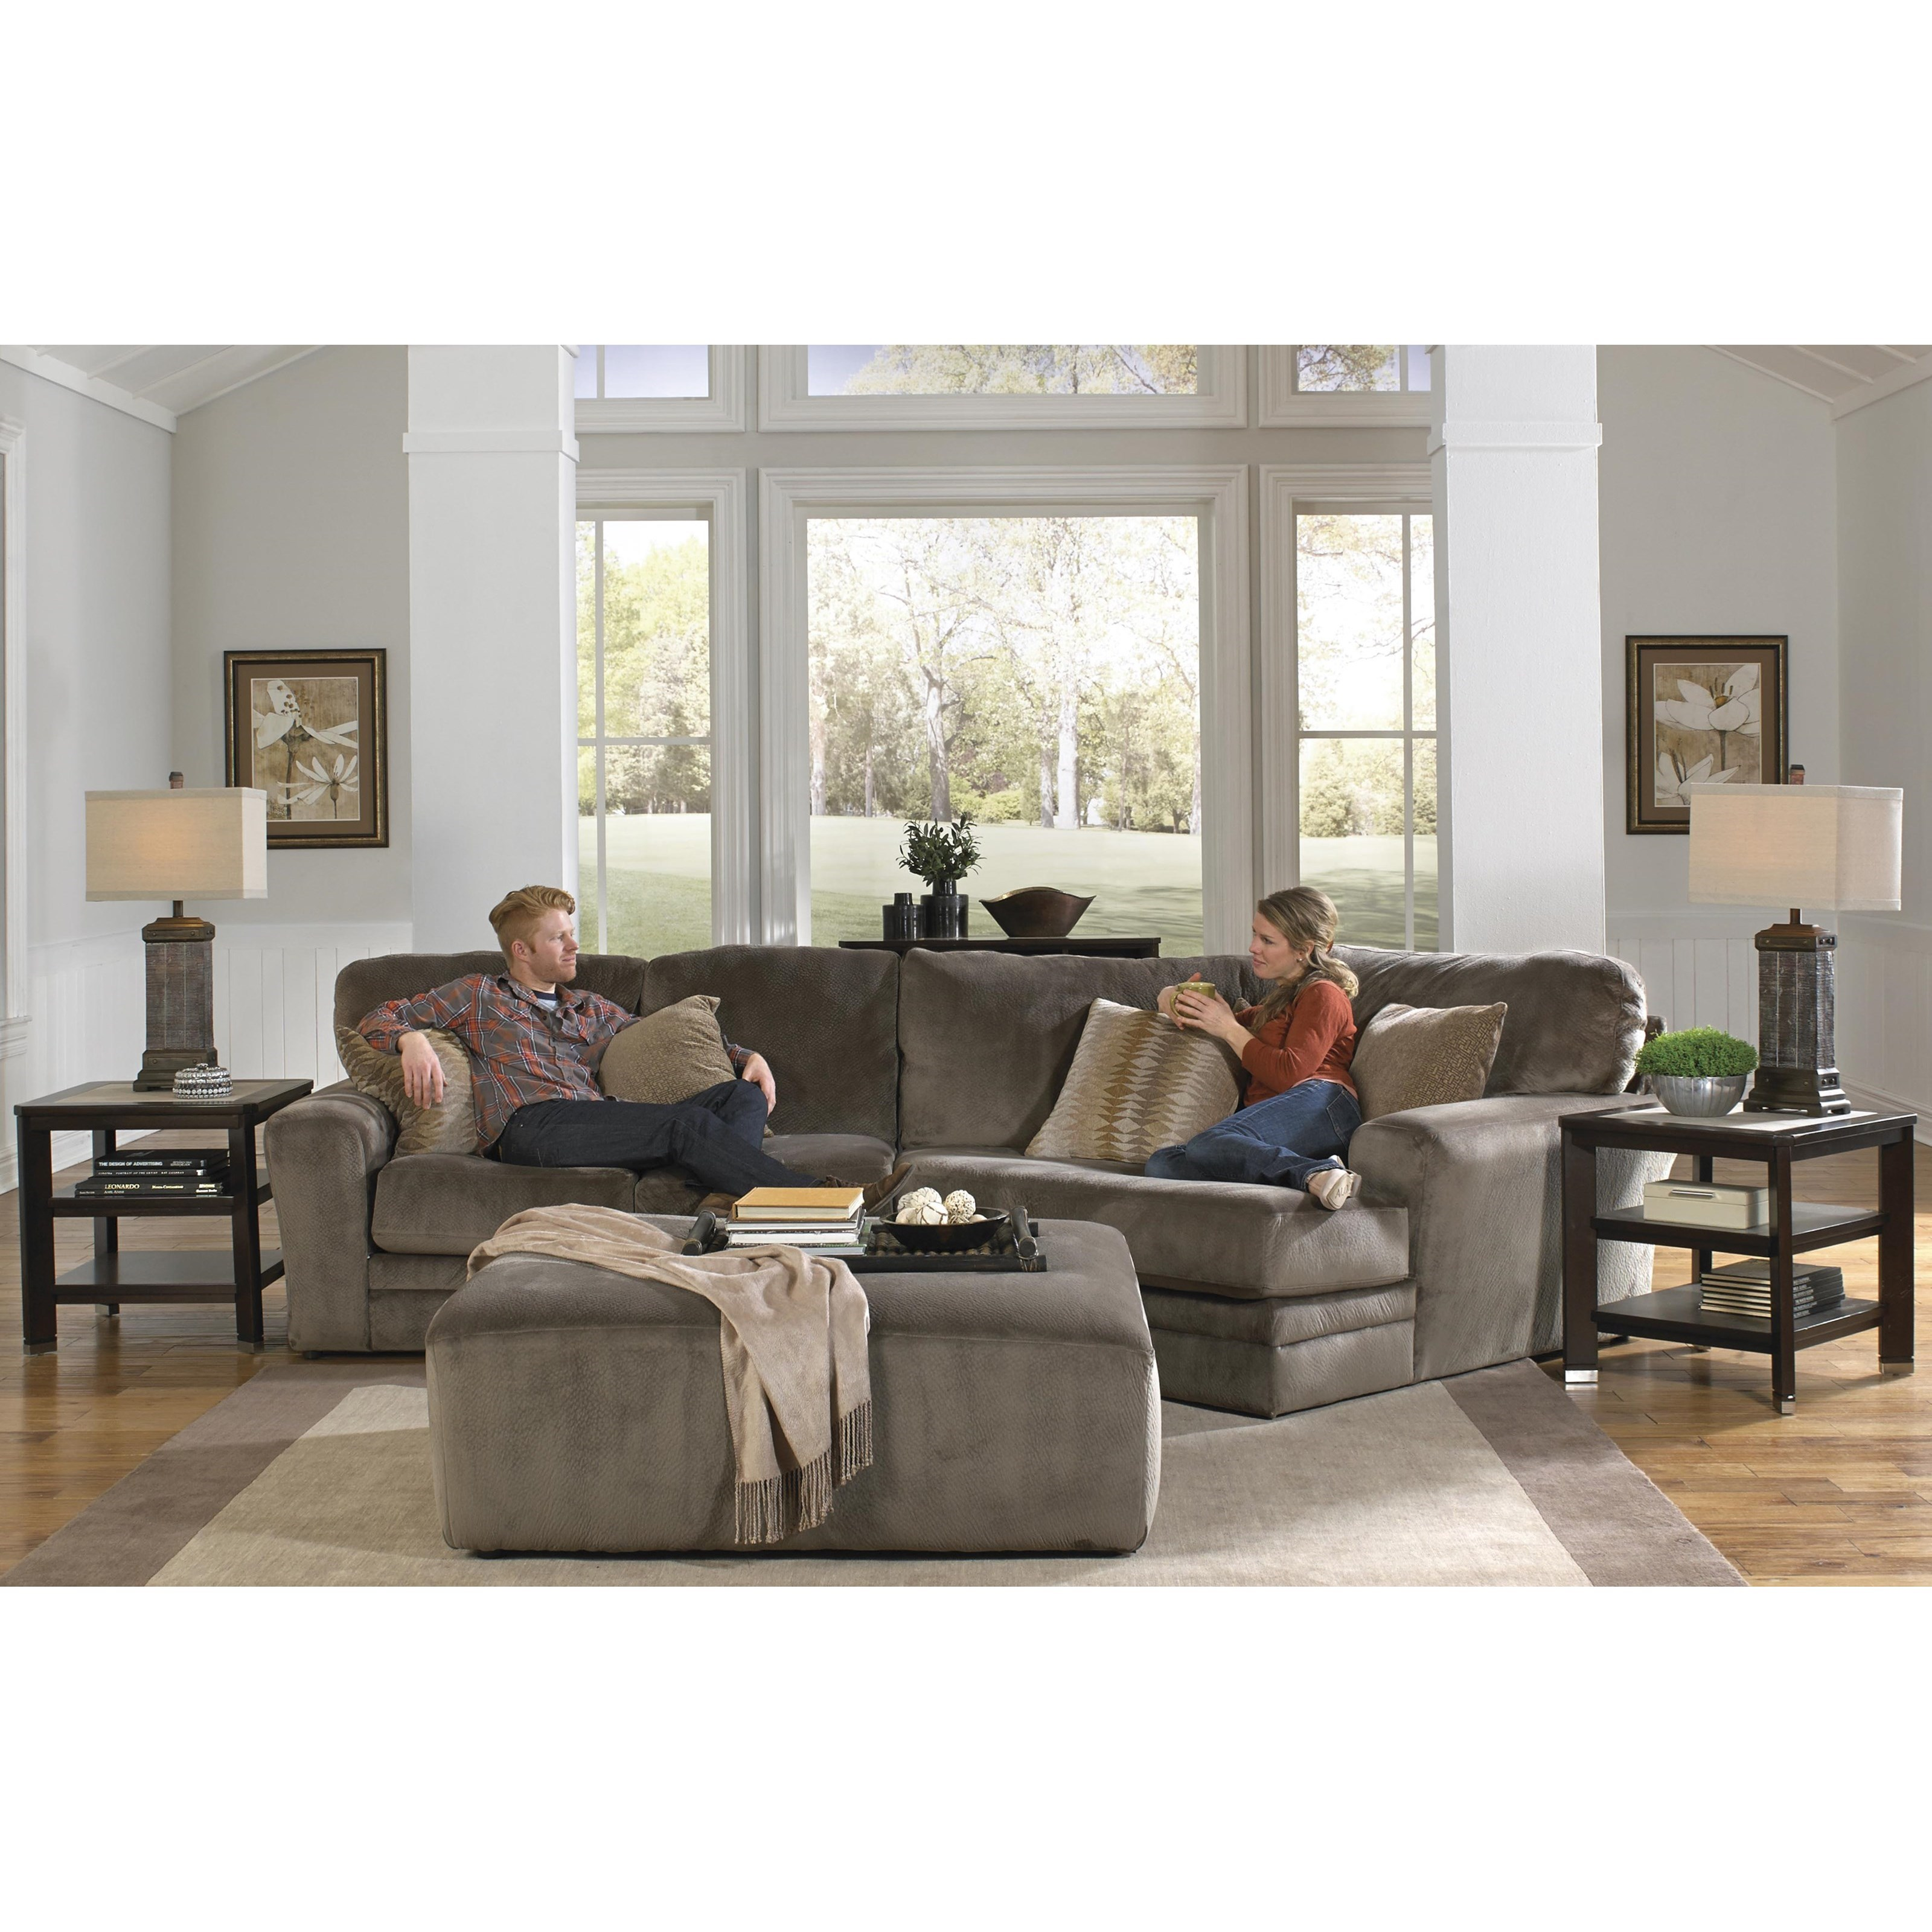 Everest 2 Piece Sectional by Jackson Furniture at Northeast Factory Direct